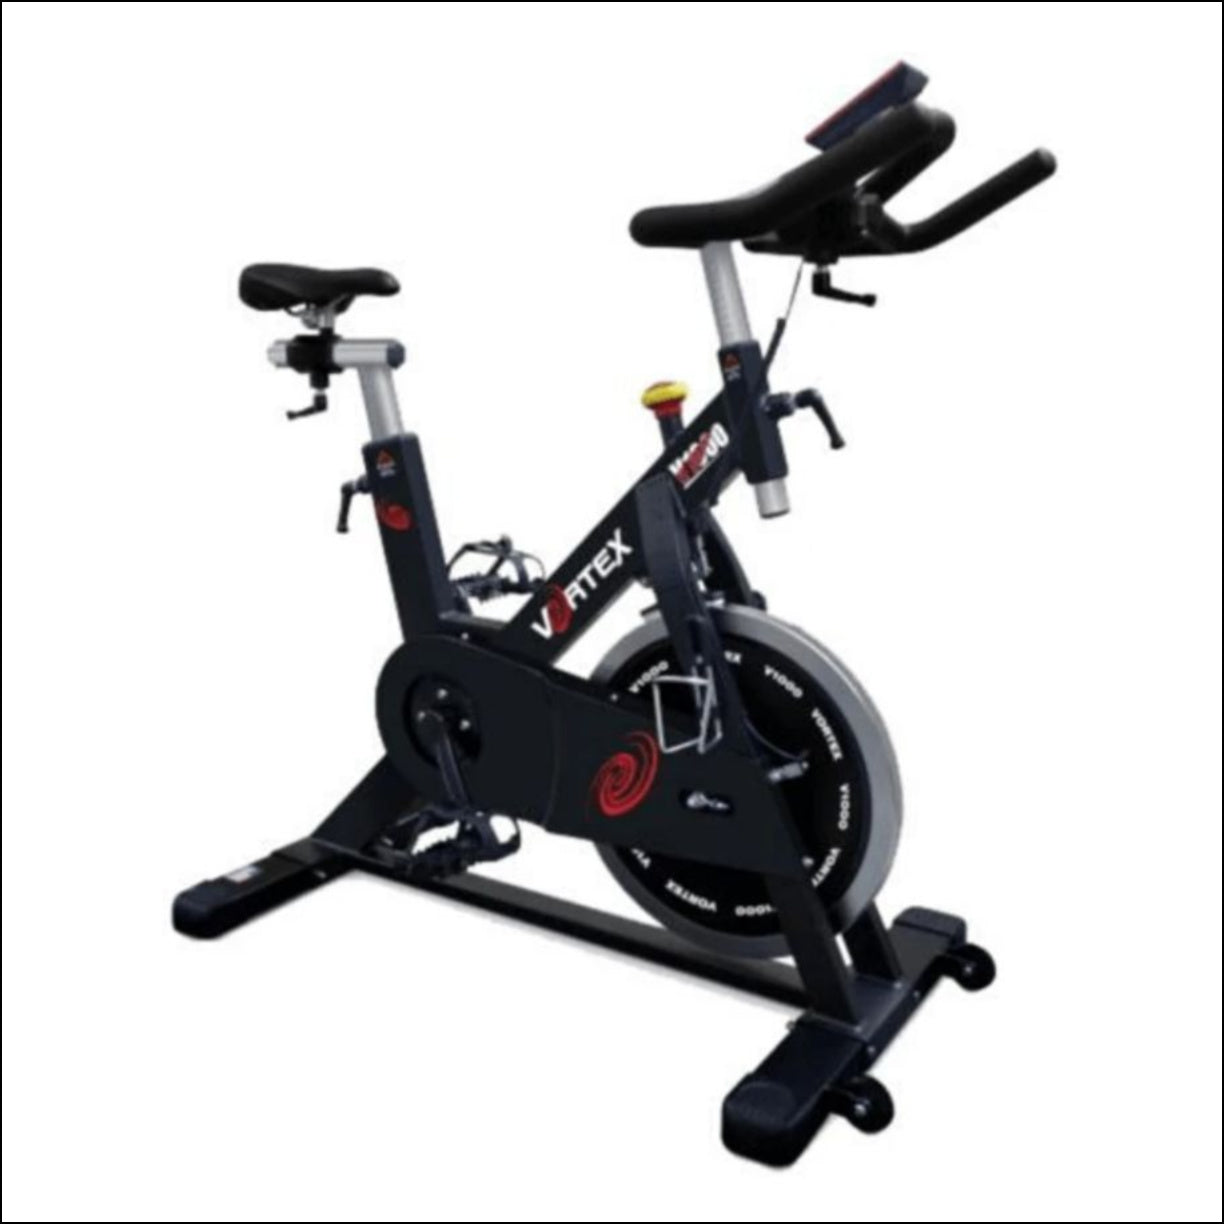 The VORTEX V1000 Spin Bike Light, sturdy and well-engineered, the Vortex V1000 is a commercial spin bike built for frequent usage and high-intensity. This spin bike has a strong solid frame with an ultra-smooth belt drive and maximum user weight of 140kg